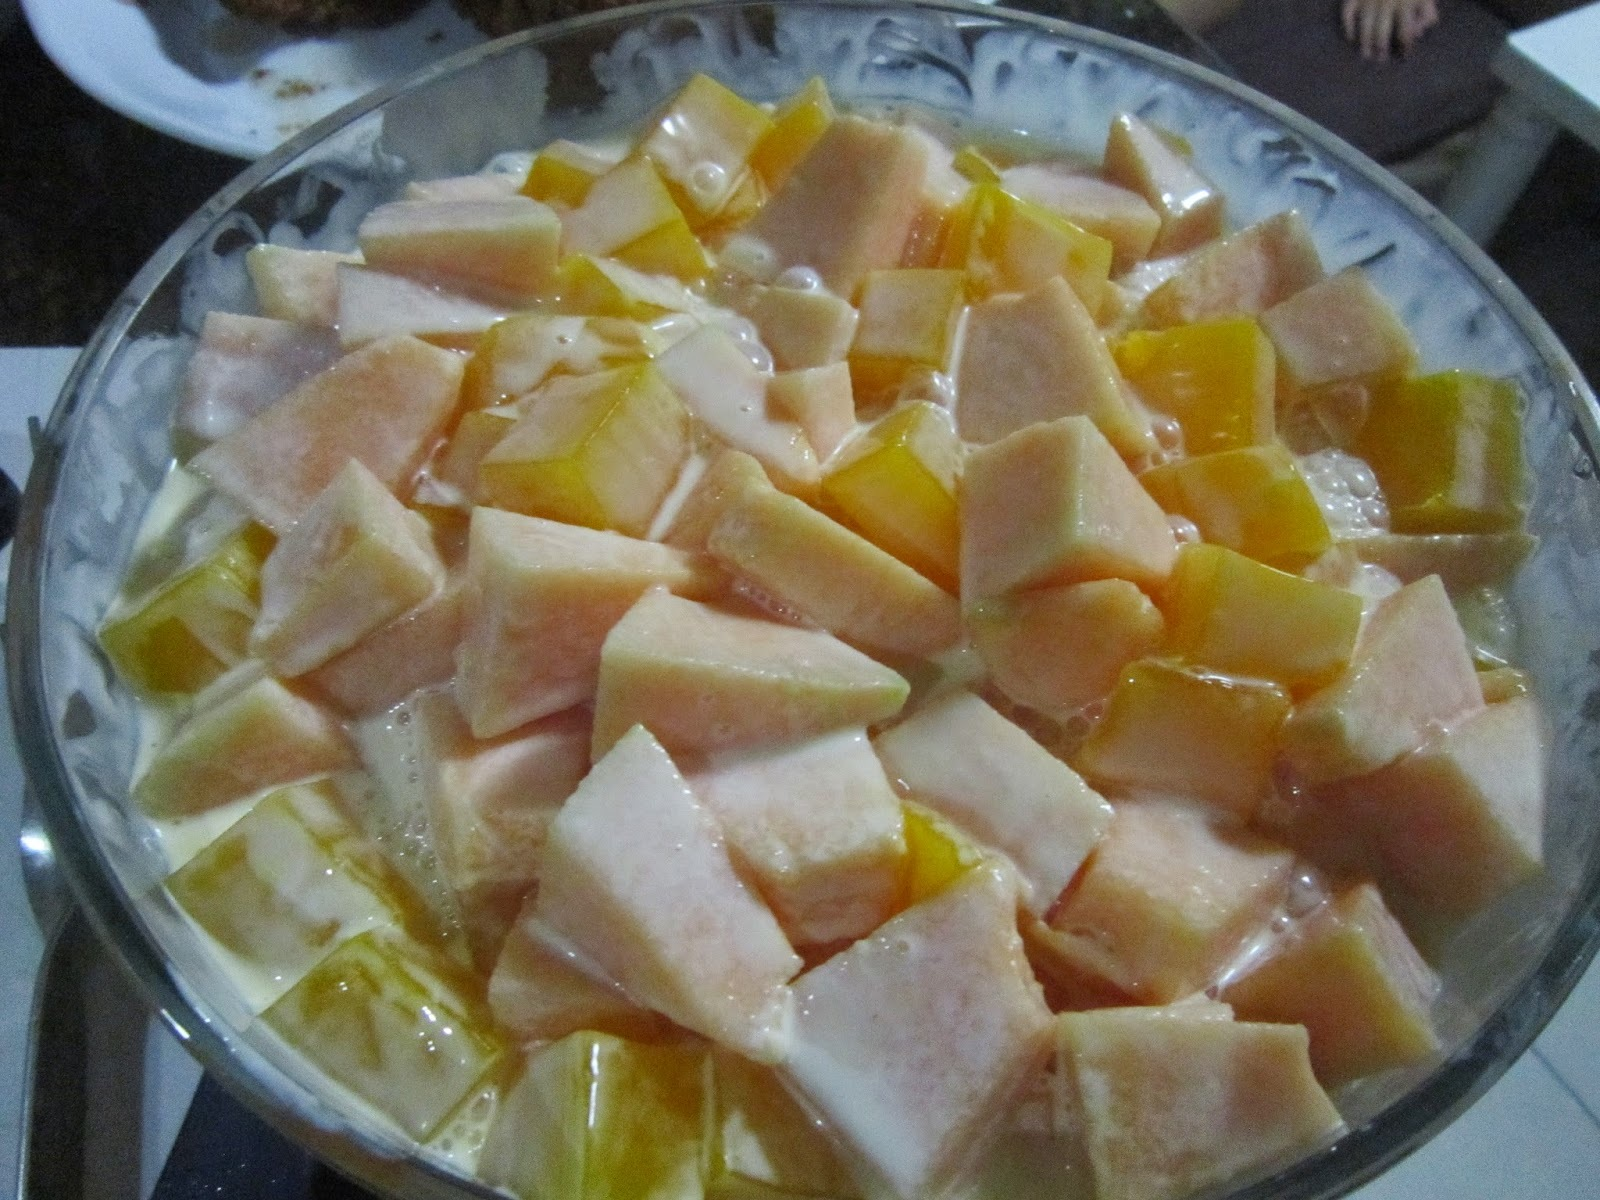 MELON and MANGO JELLY SALAD